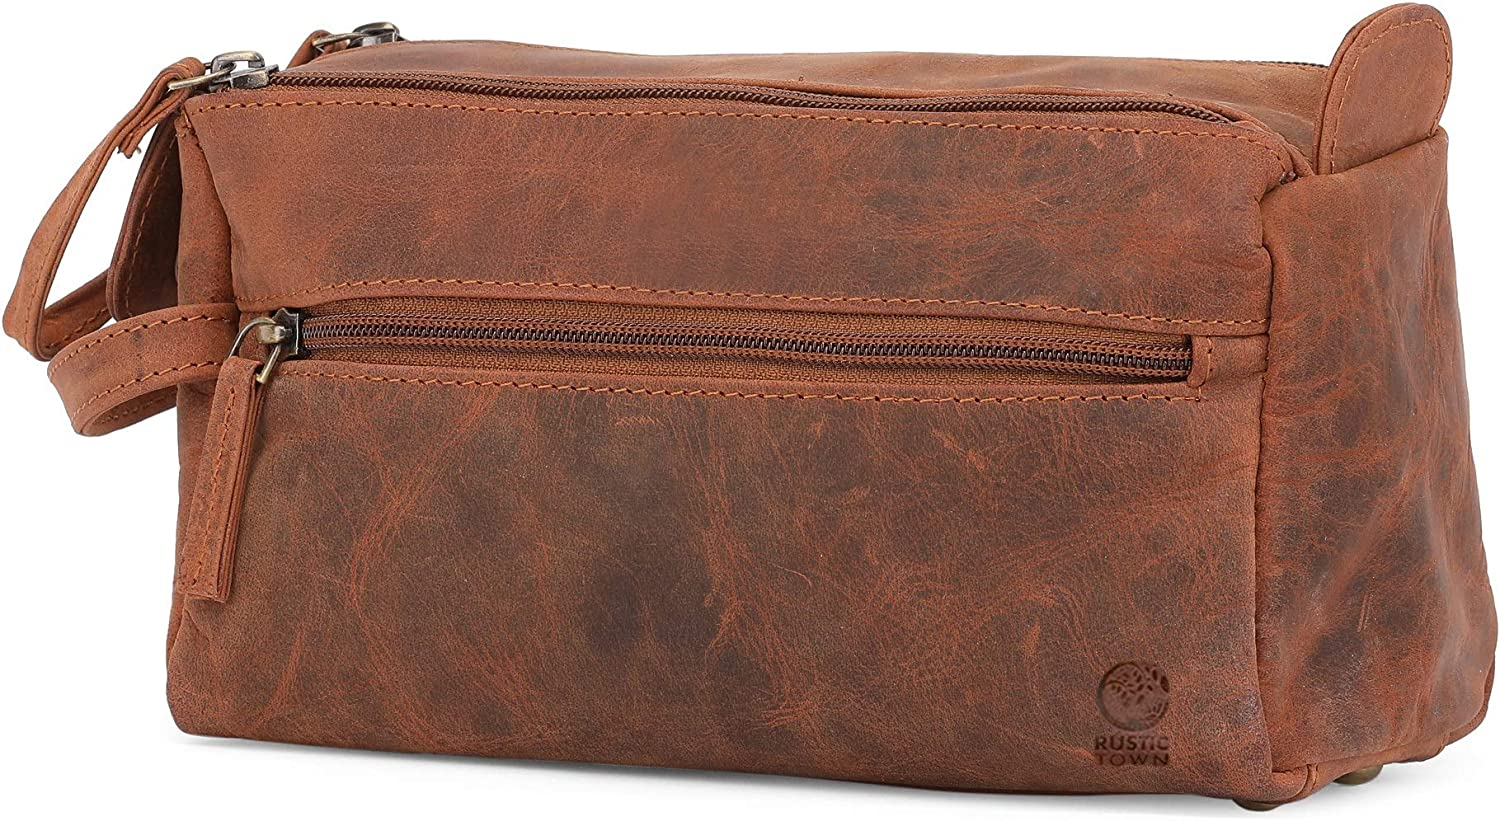 Rustic Town Buffalo Leather Toiletry Bag Vintage Travel Shaving Dopp Kit for Toiletries, Cosmetics More Spacious Interior Waterproof Lining Compact, Fits Easily in Luggage